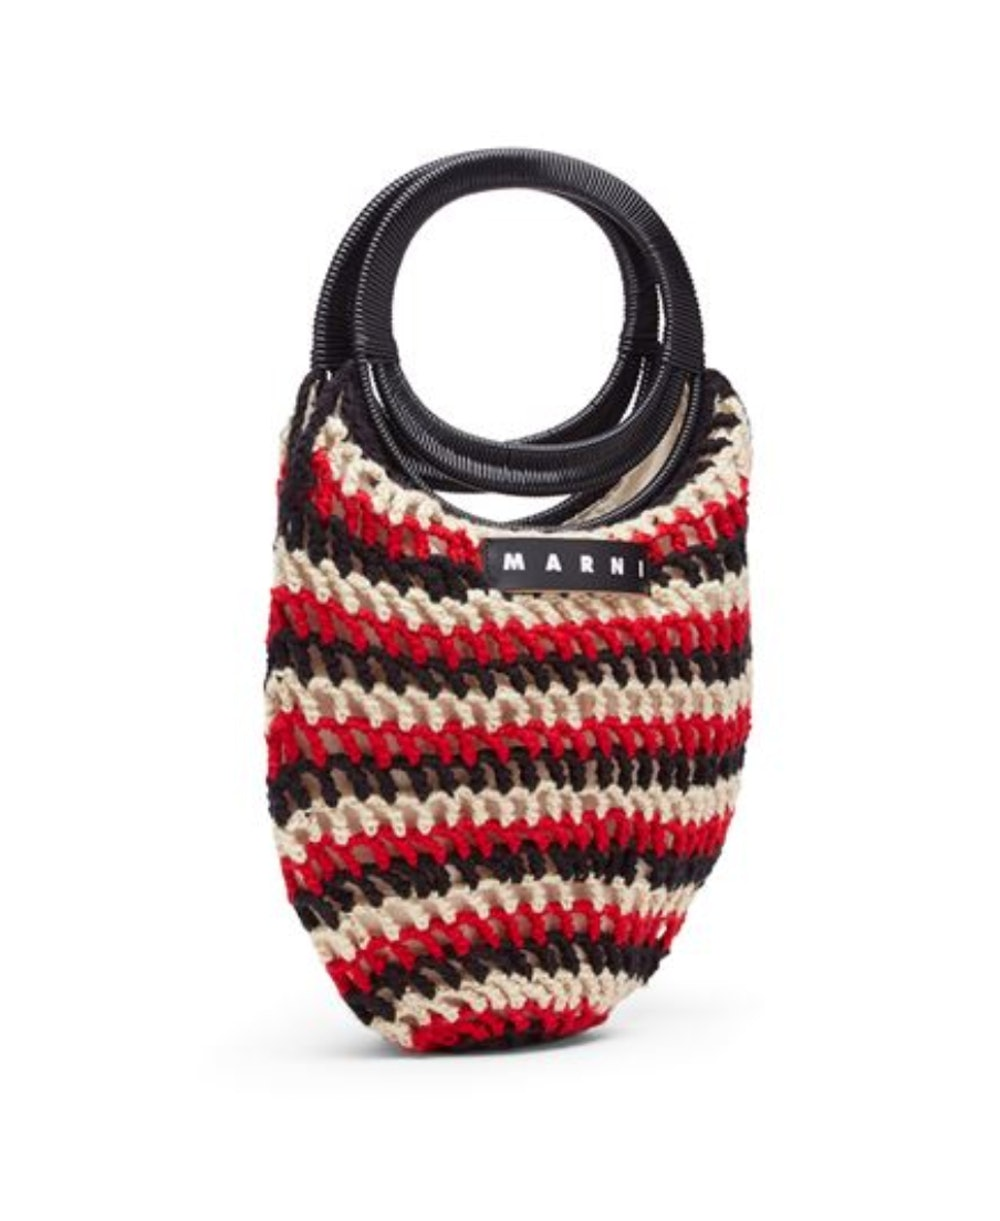 Oval Crochet Handbag